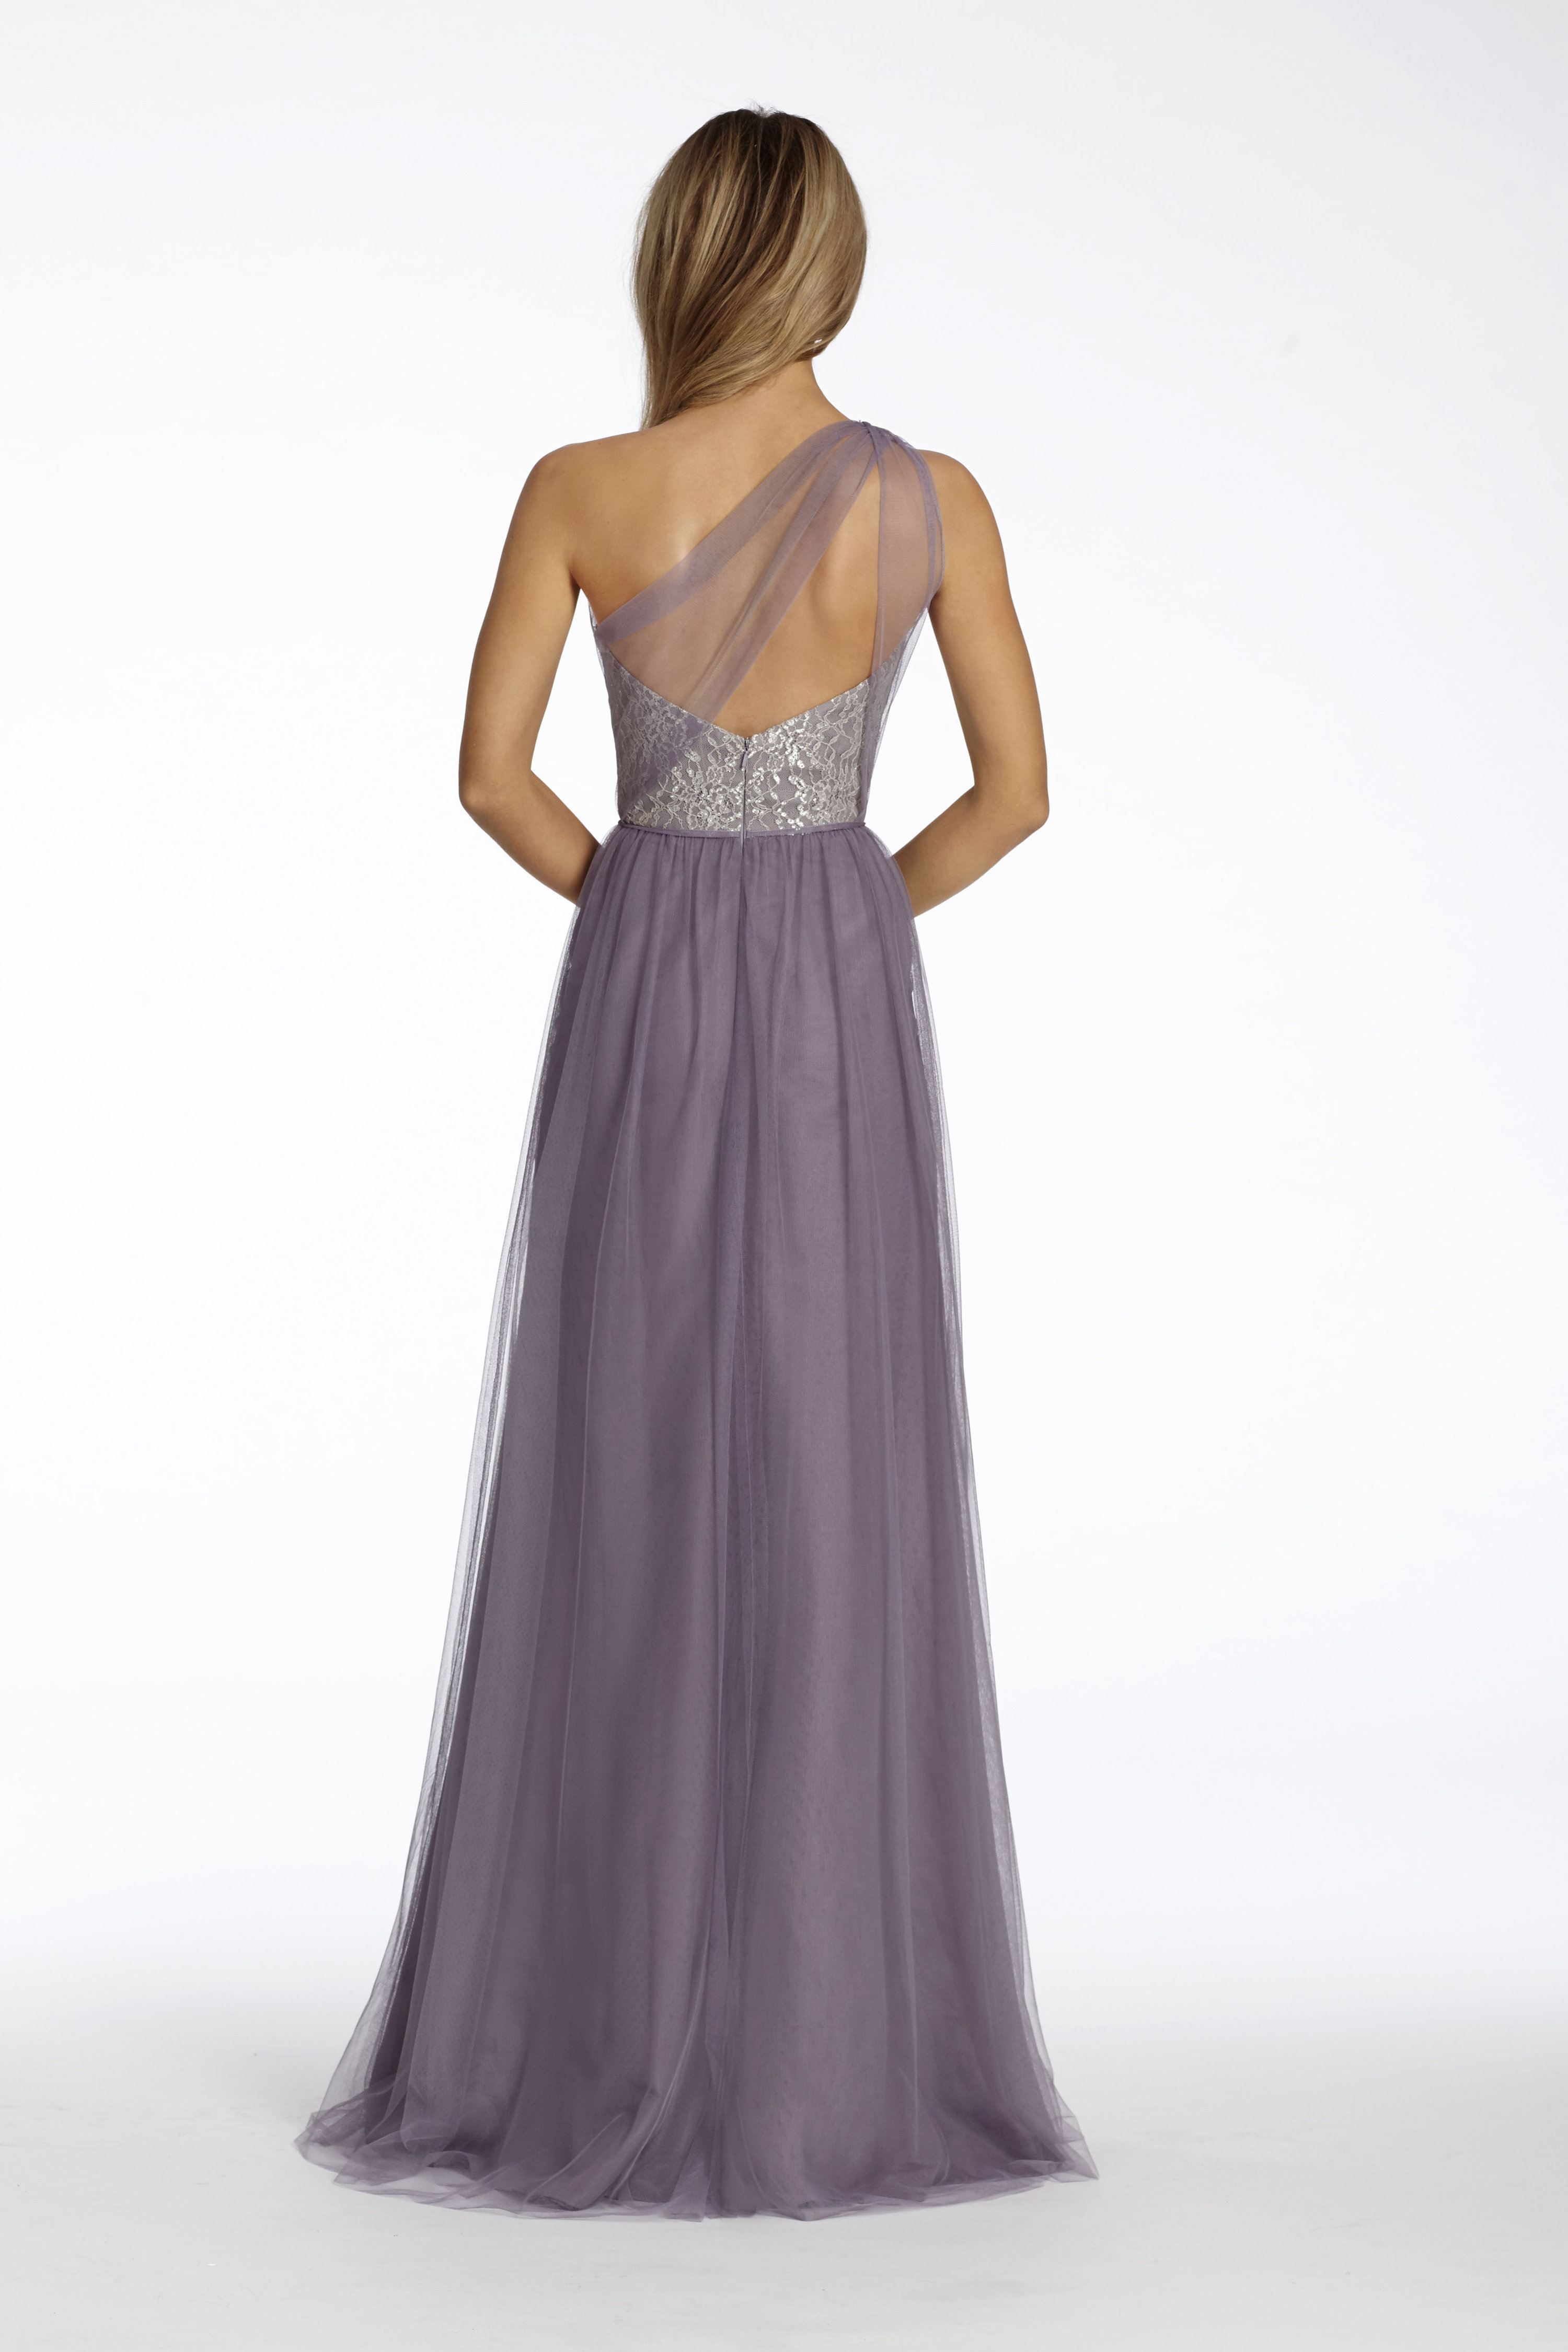 hayley paige occasions bridesmaid spring style